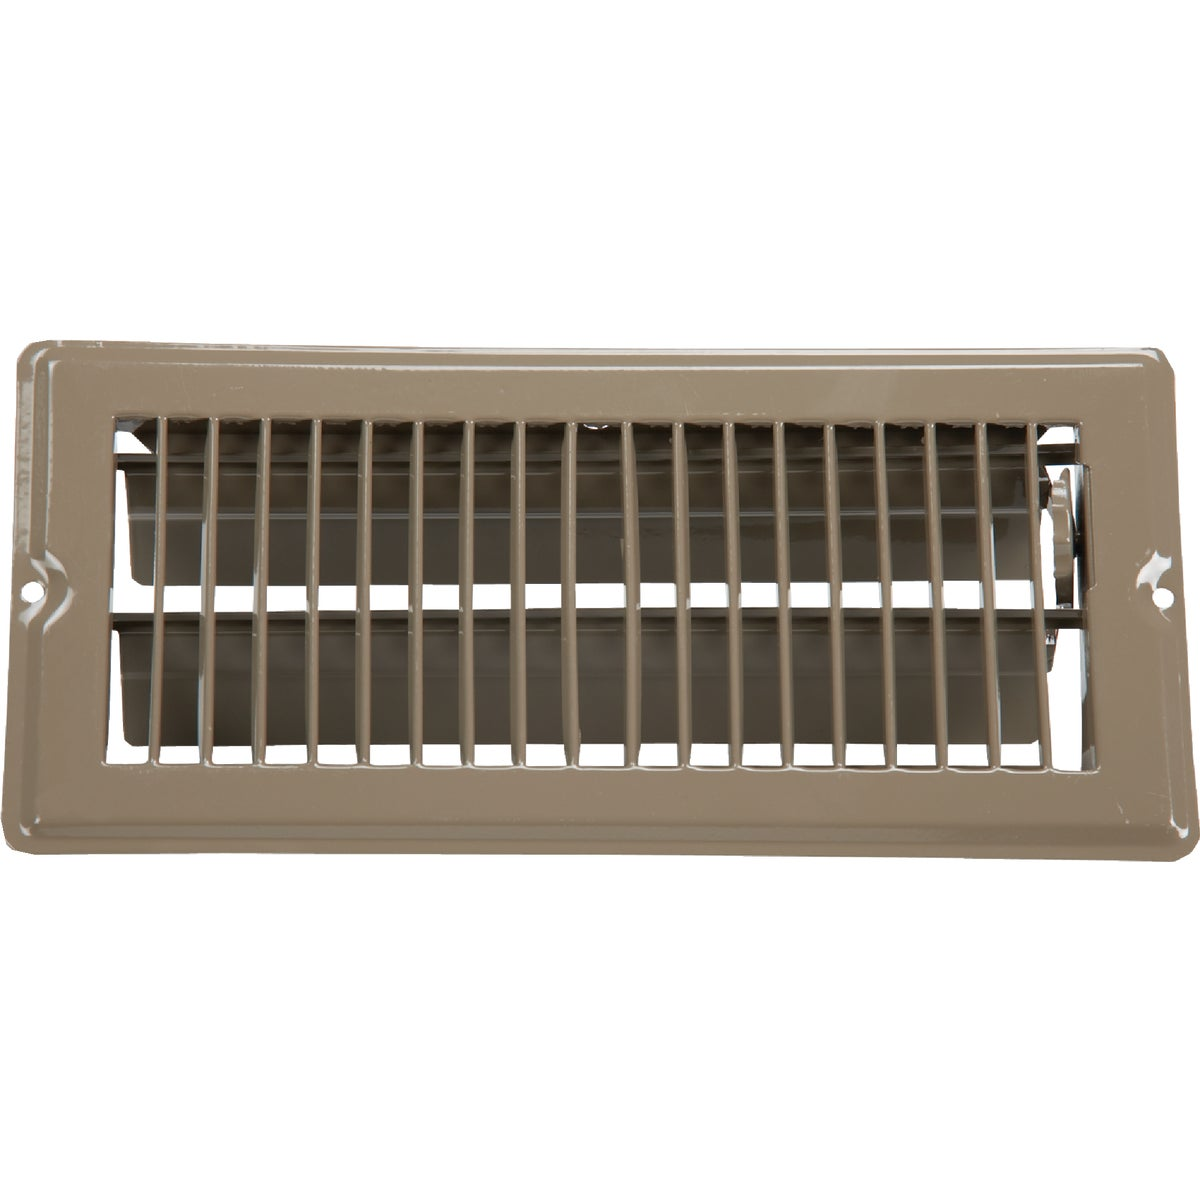 4X10 BRN FLOOR REGISTER - V-103B by U S Hardware